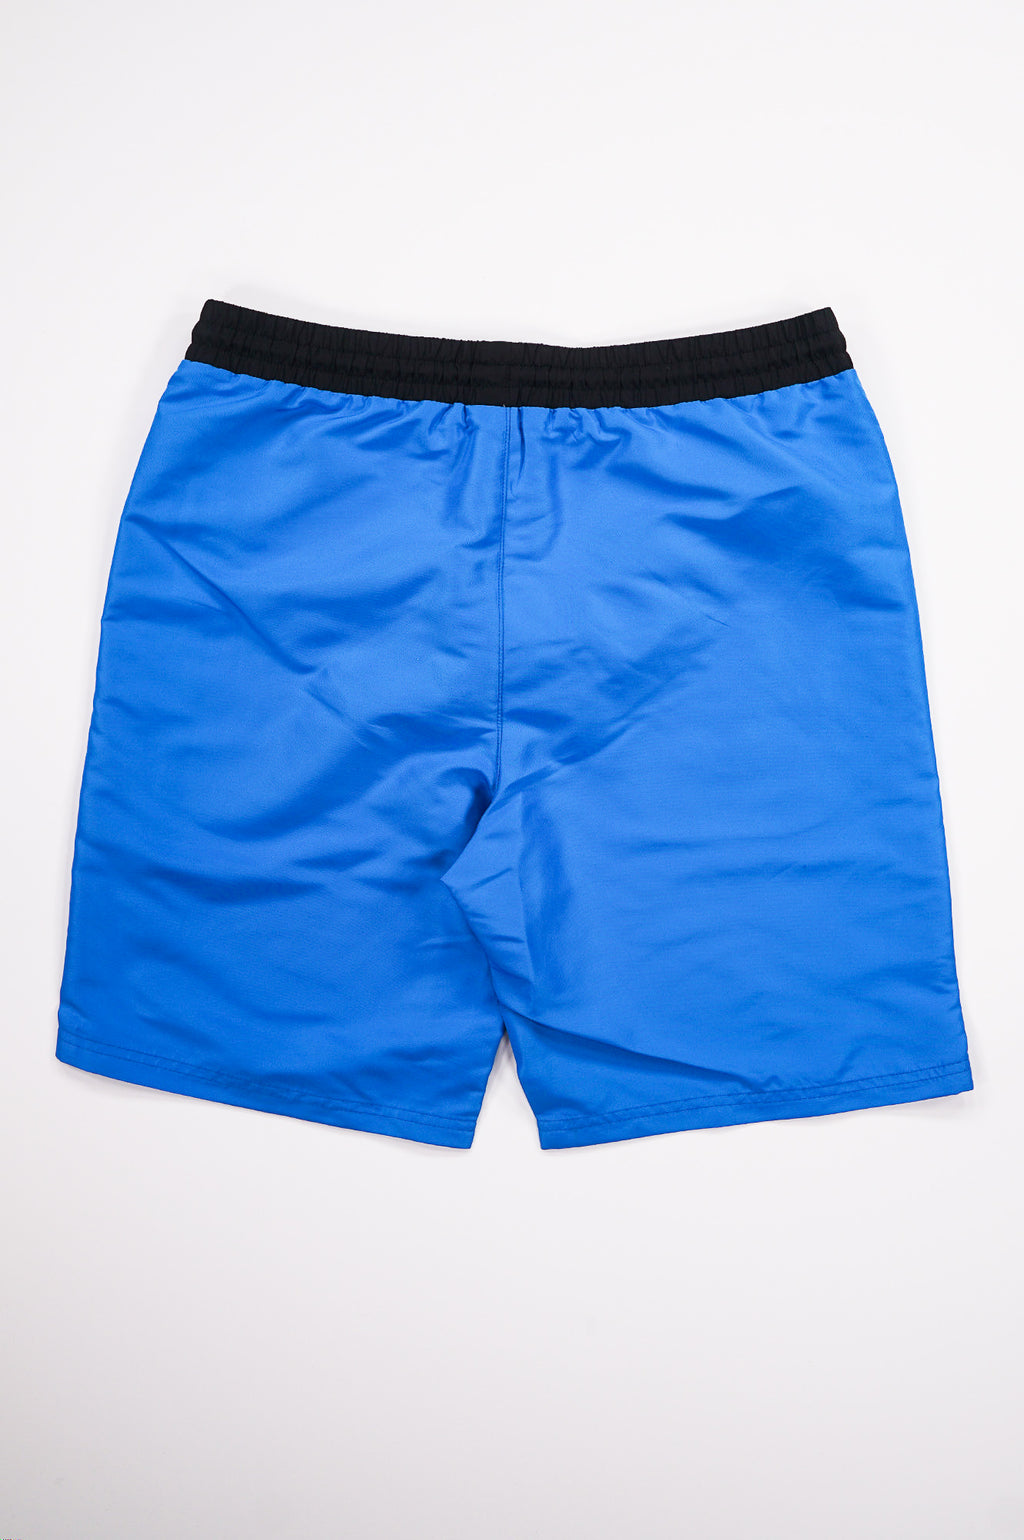 Calvin Klein Sportswear Men Athleisure Techy Shorts